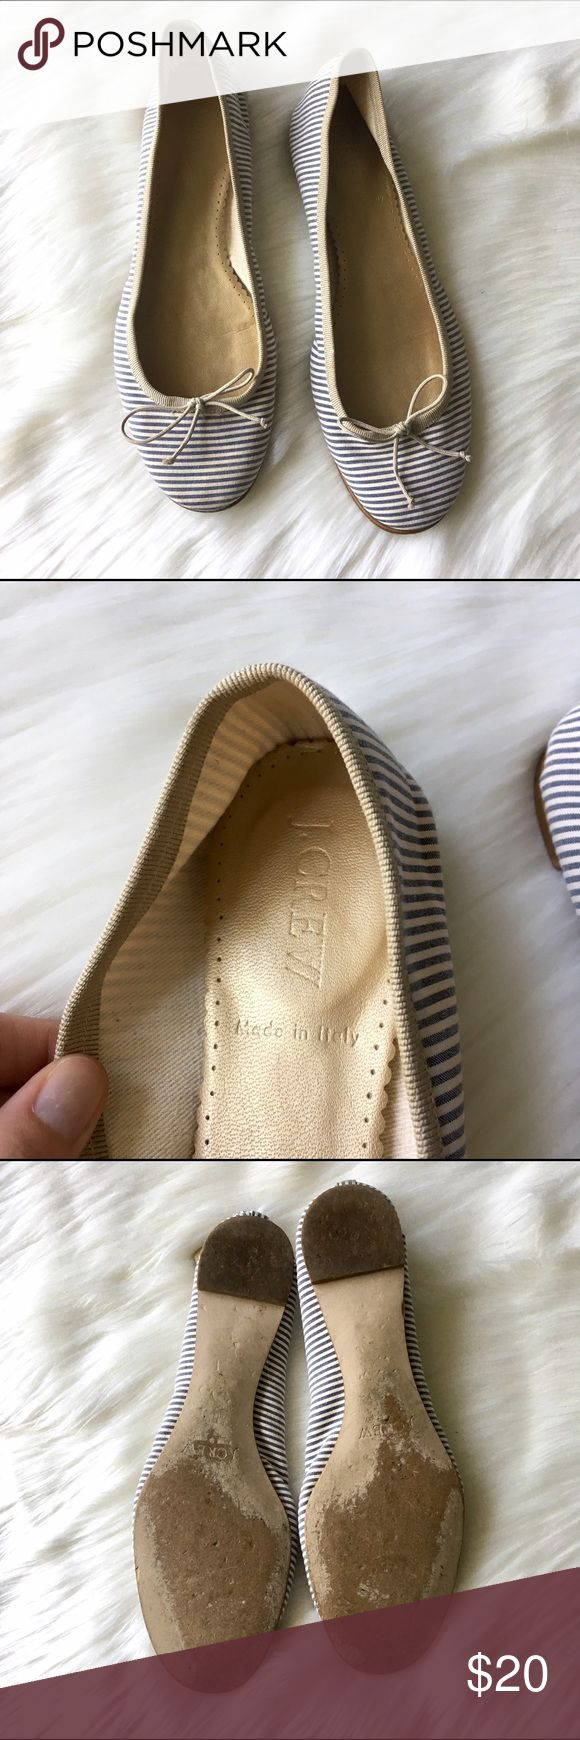 """J. Crew Striped Ballet Flats - Sz 6 Classic striped ballet flats from J. Crew in GUC! Fabric upper; leather lining and sole. Features light blue stripes against cream background with beige trim and bows. Beautiful condition; primary signs of wear are on bottoms of shoes (pictured). 1/4"""" heel. So cute for spring! Questions welcome! J. Crew Shoes Flats & Loafers"""